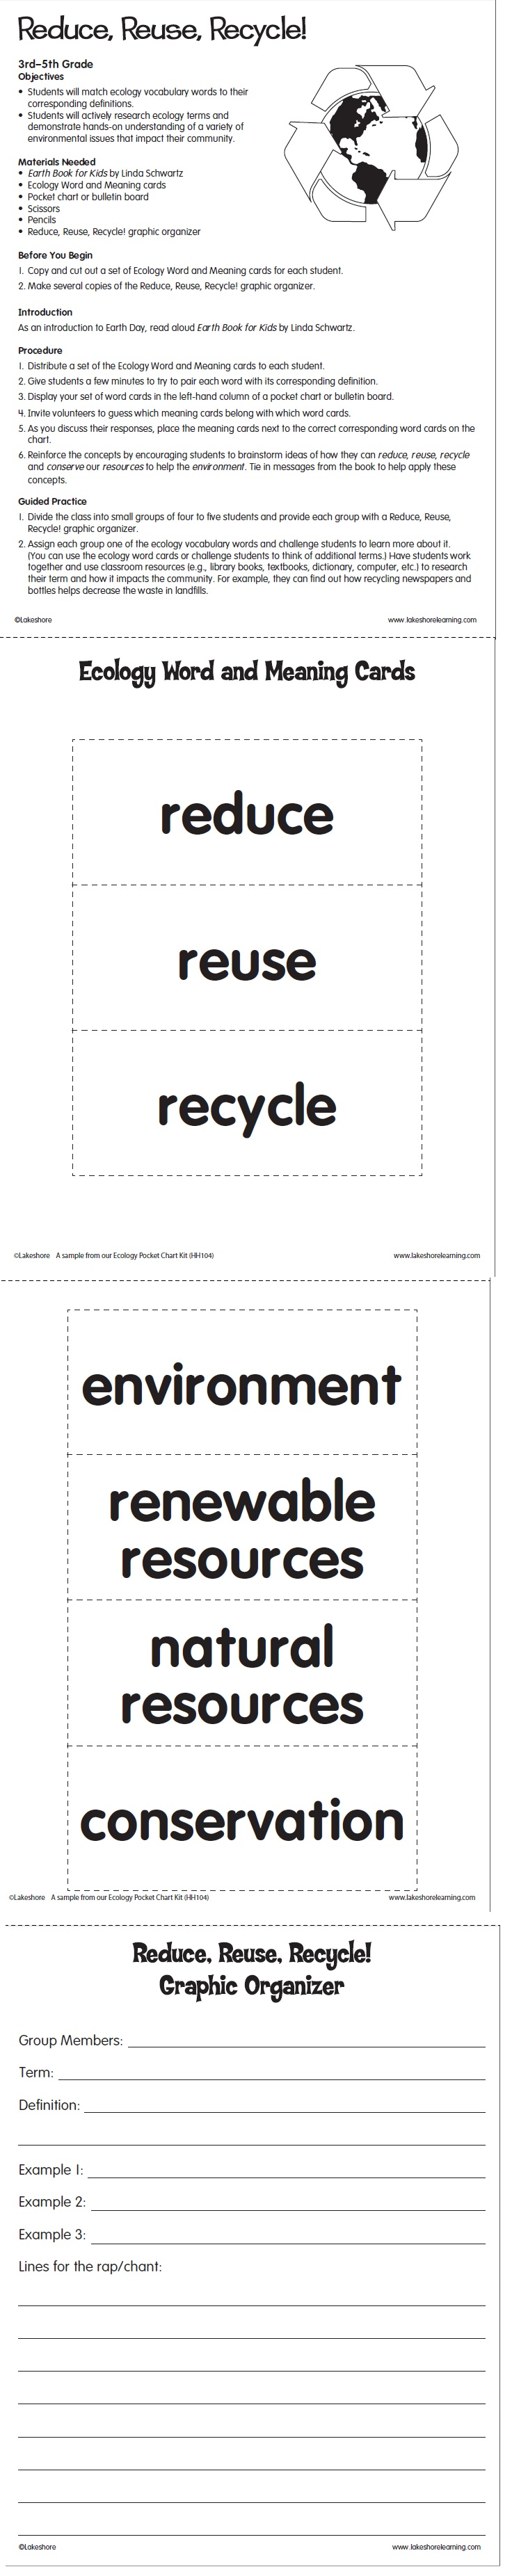 Reduce Reuse Recycle From Lakeshore Learning Kids Research